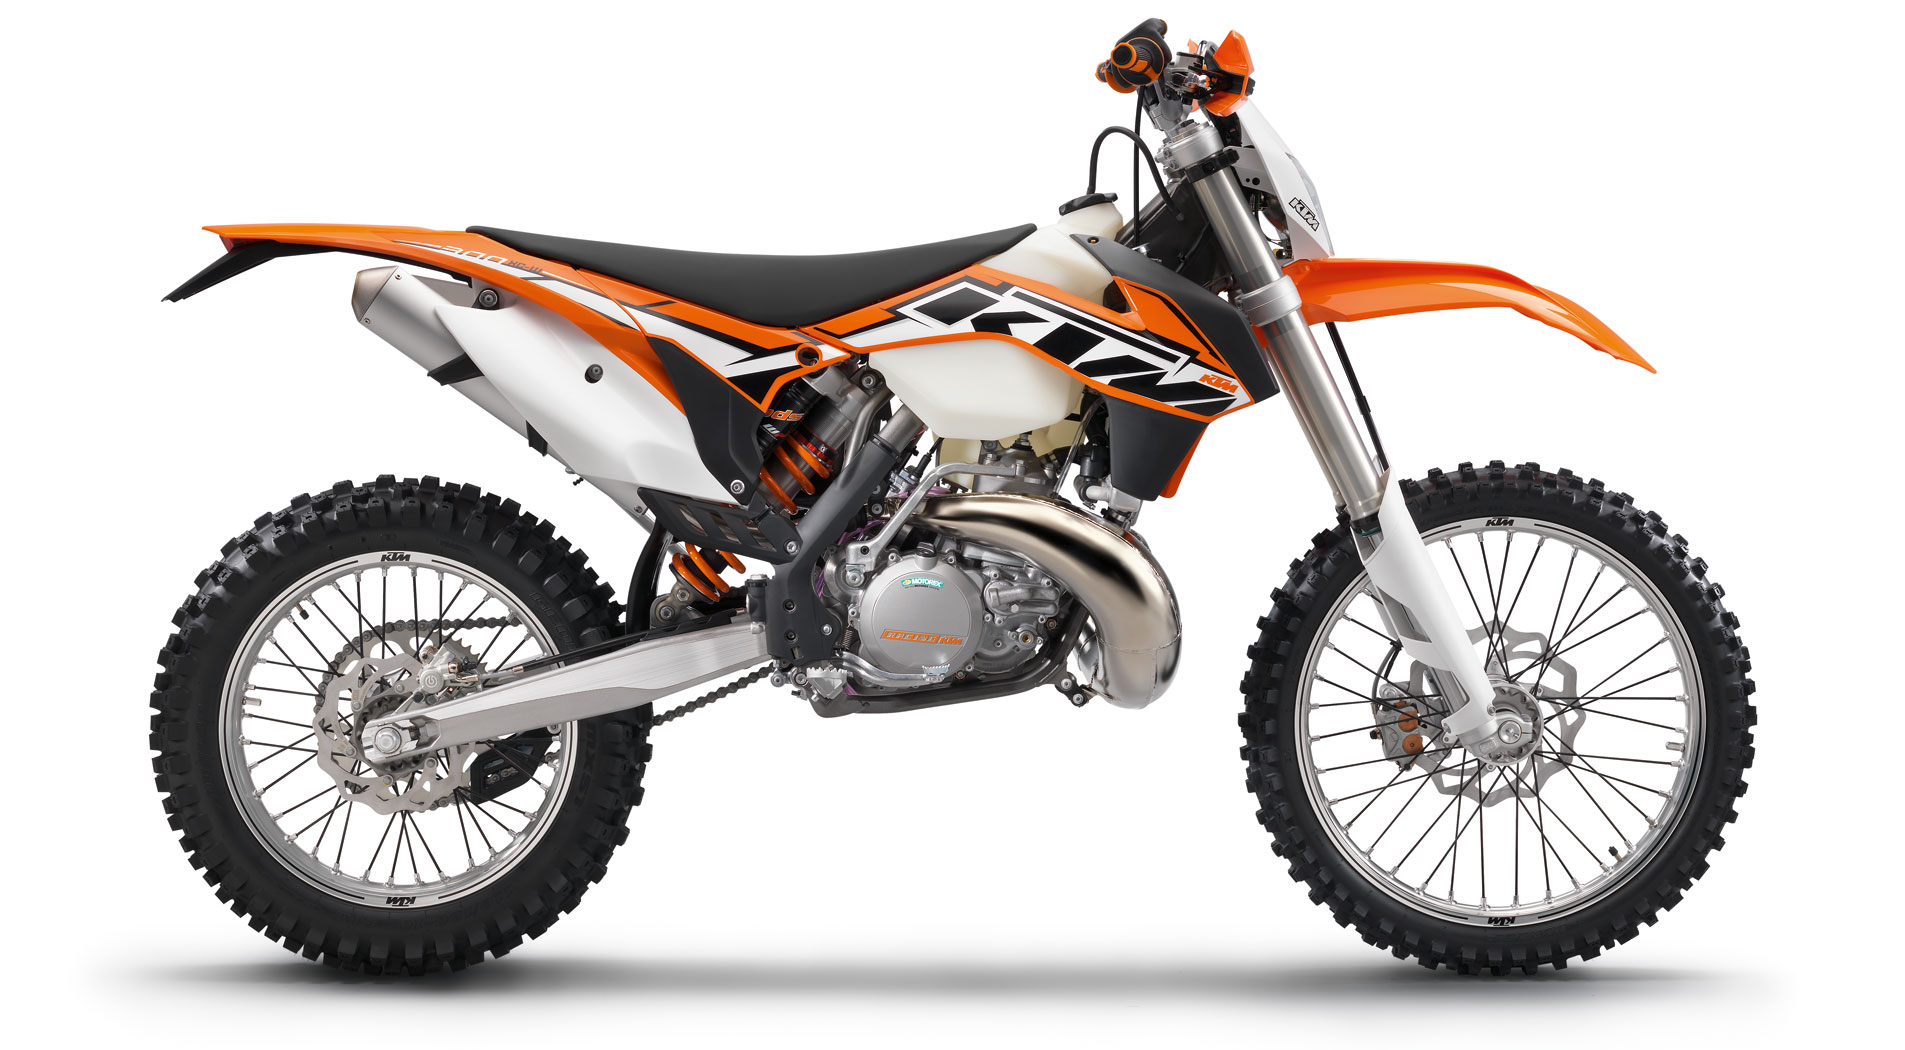 2014 ktm 300 xc-w review - gallery - top speed